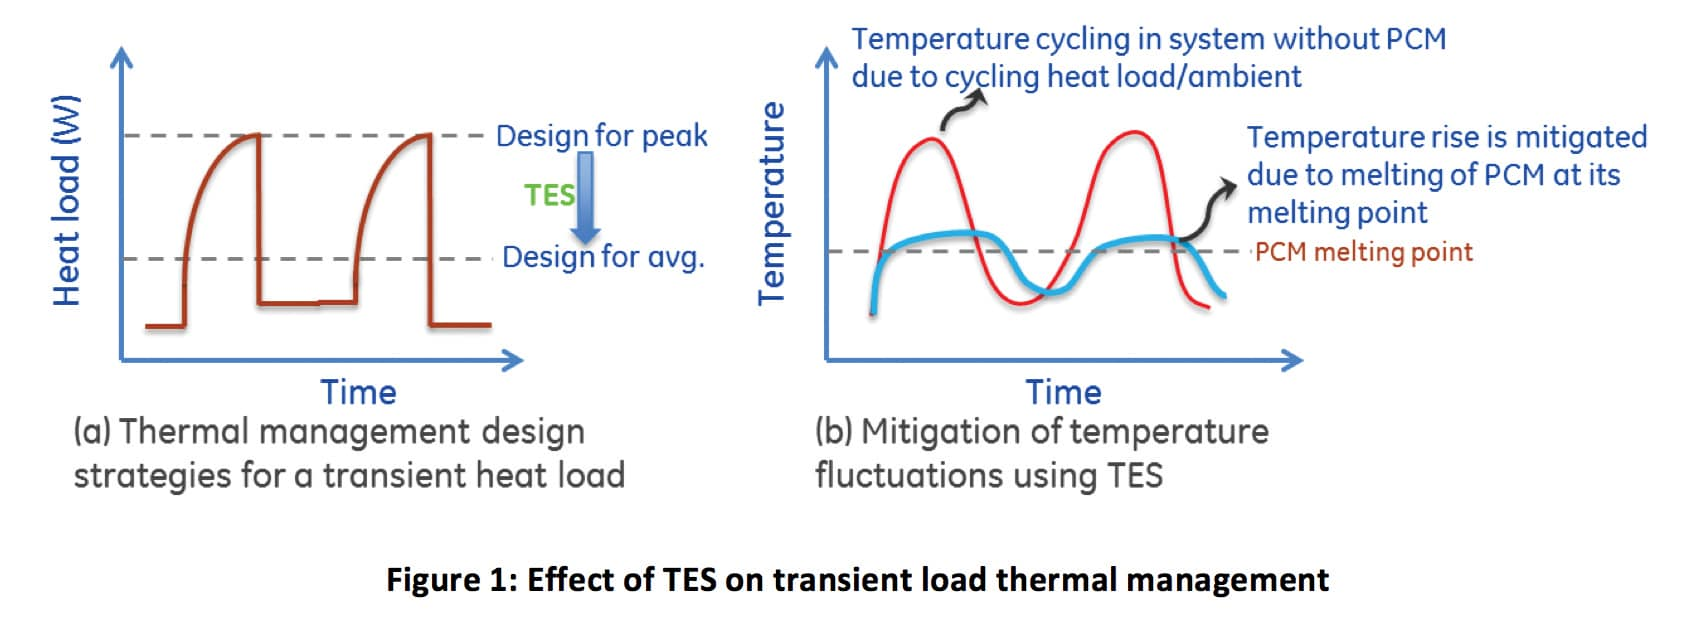 A Novel Approach To Development Of Thermal Capacitor Electronics Capacitance And Charge On Capacitors Plates Adequately Designed Tes Systems Could By Delaying Temperature Rise Play An Important Role In Providing Additional Time For The Reliable Operation